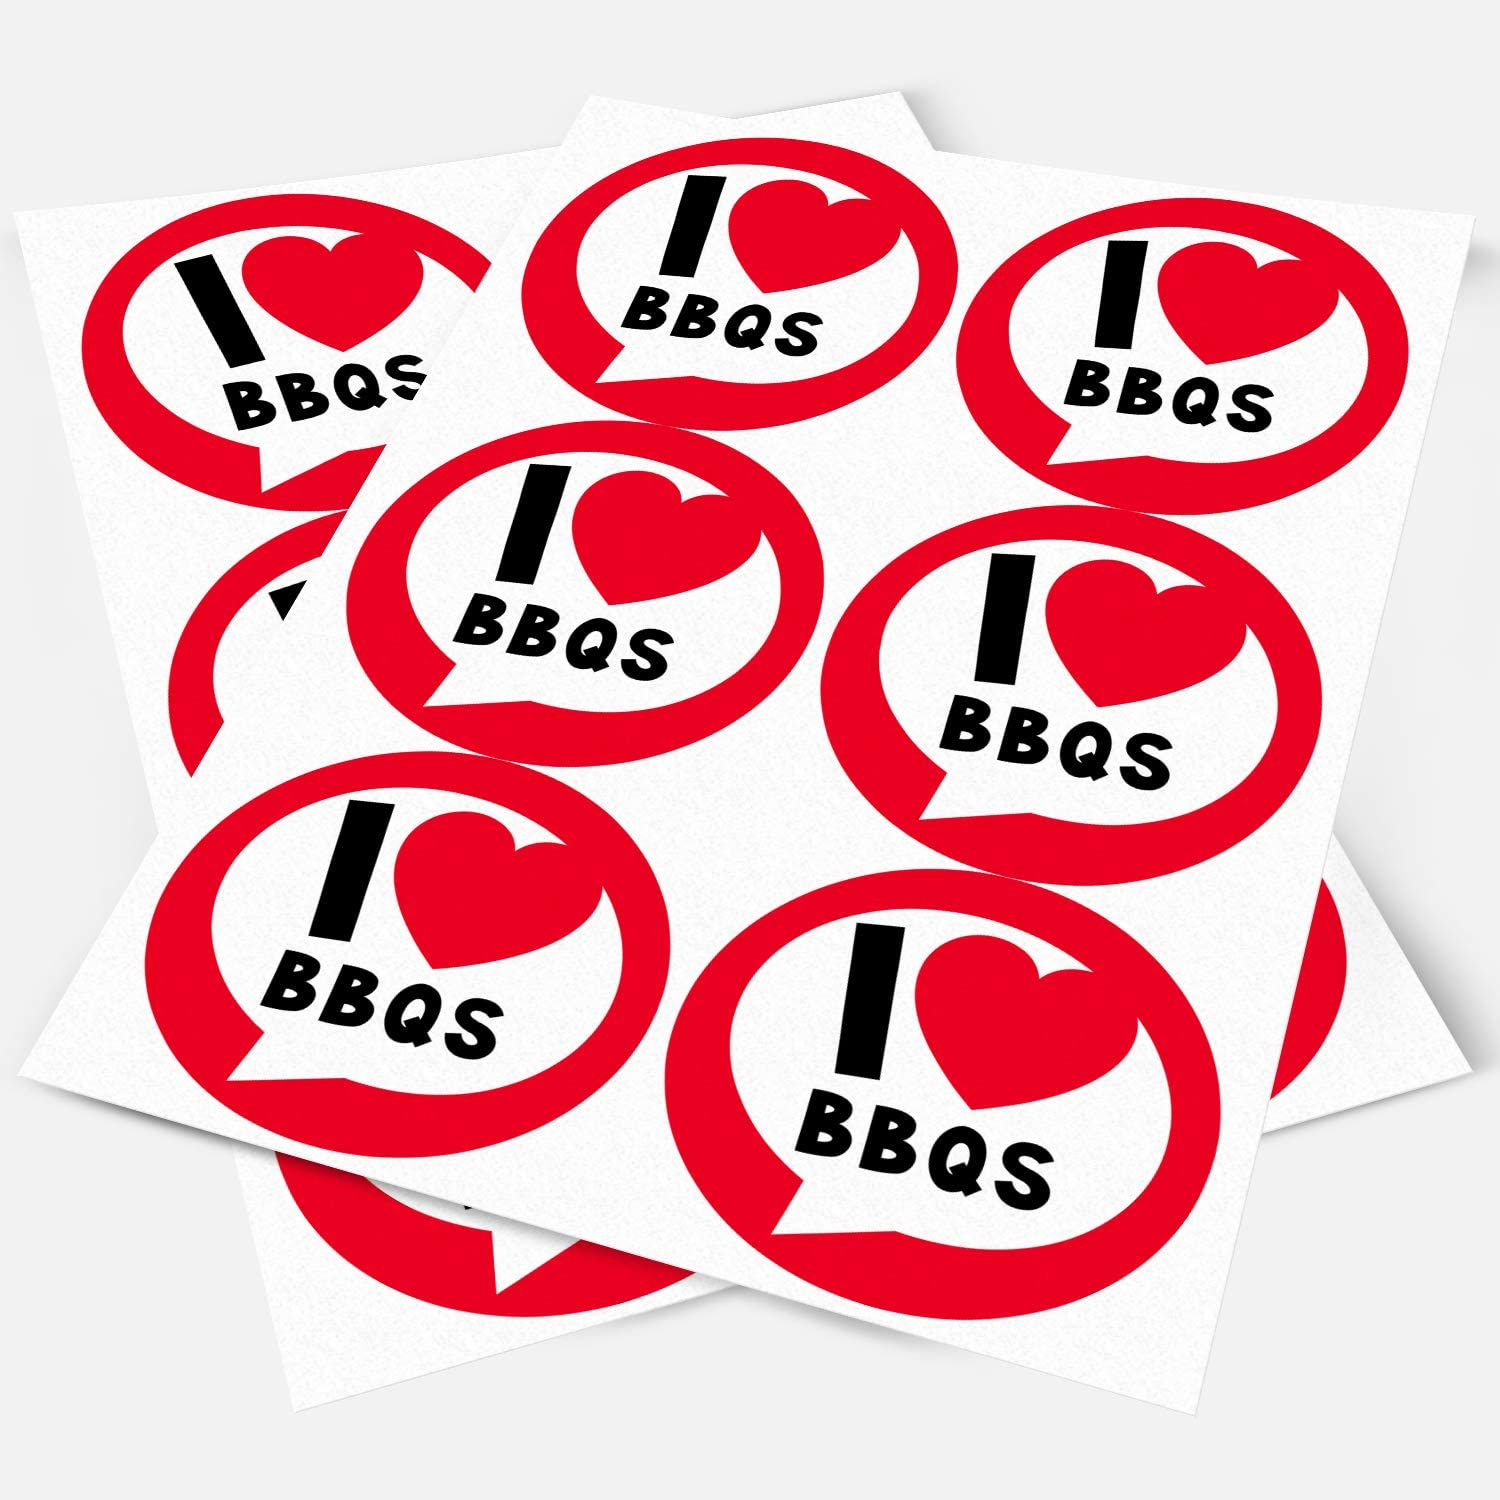 I Love BBQs Sticker Labels Sweet Cones Party Bags Gift Boxes Favors Thank You Non-Personalised 3.5 cm x 35 // 1, A4 Sheet